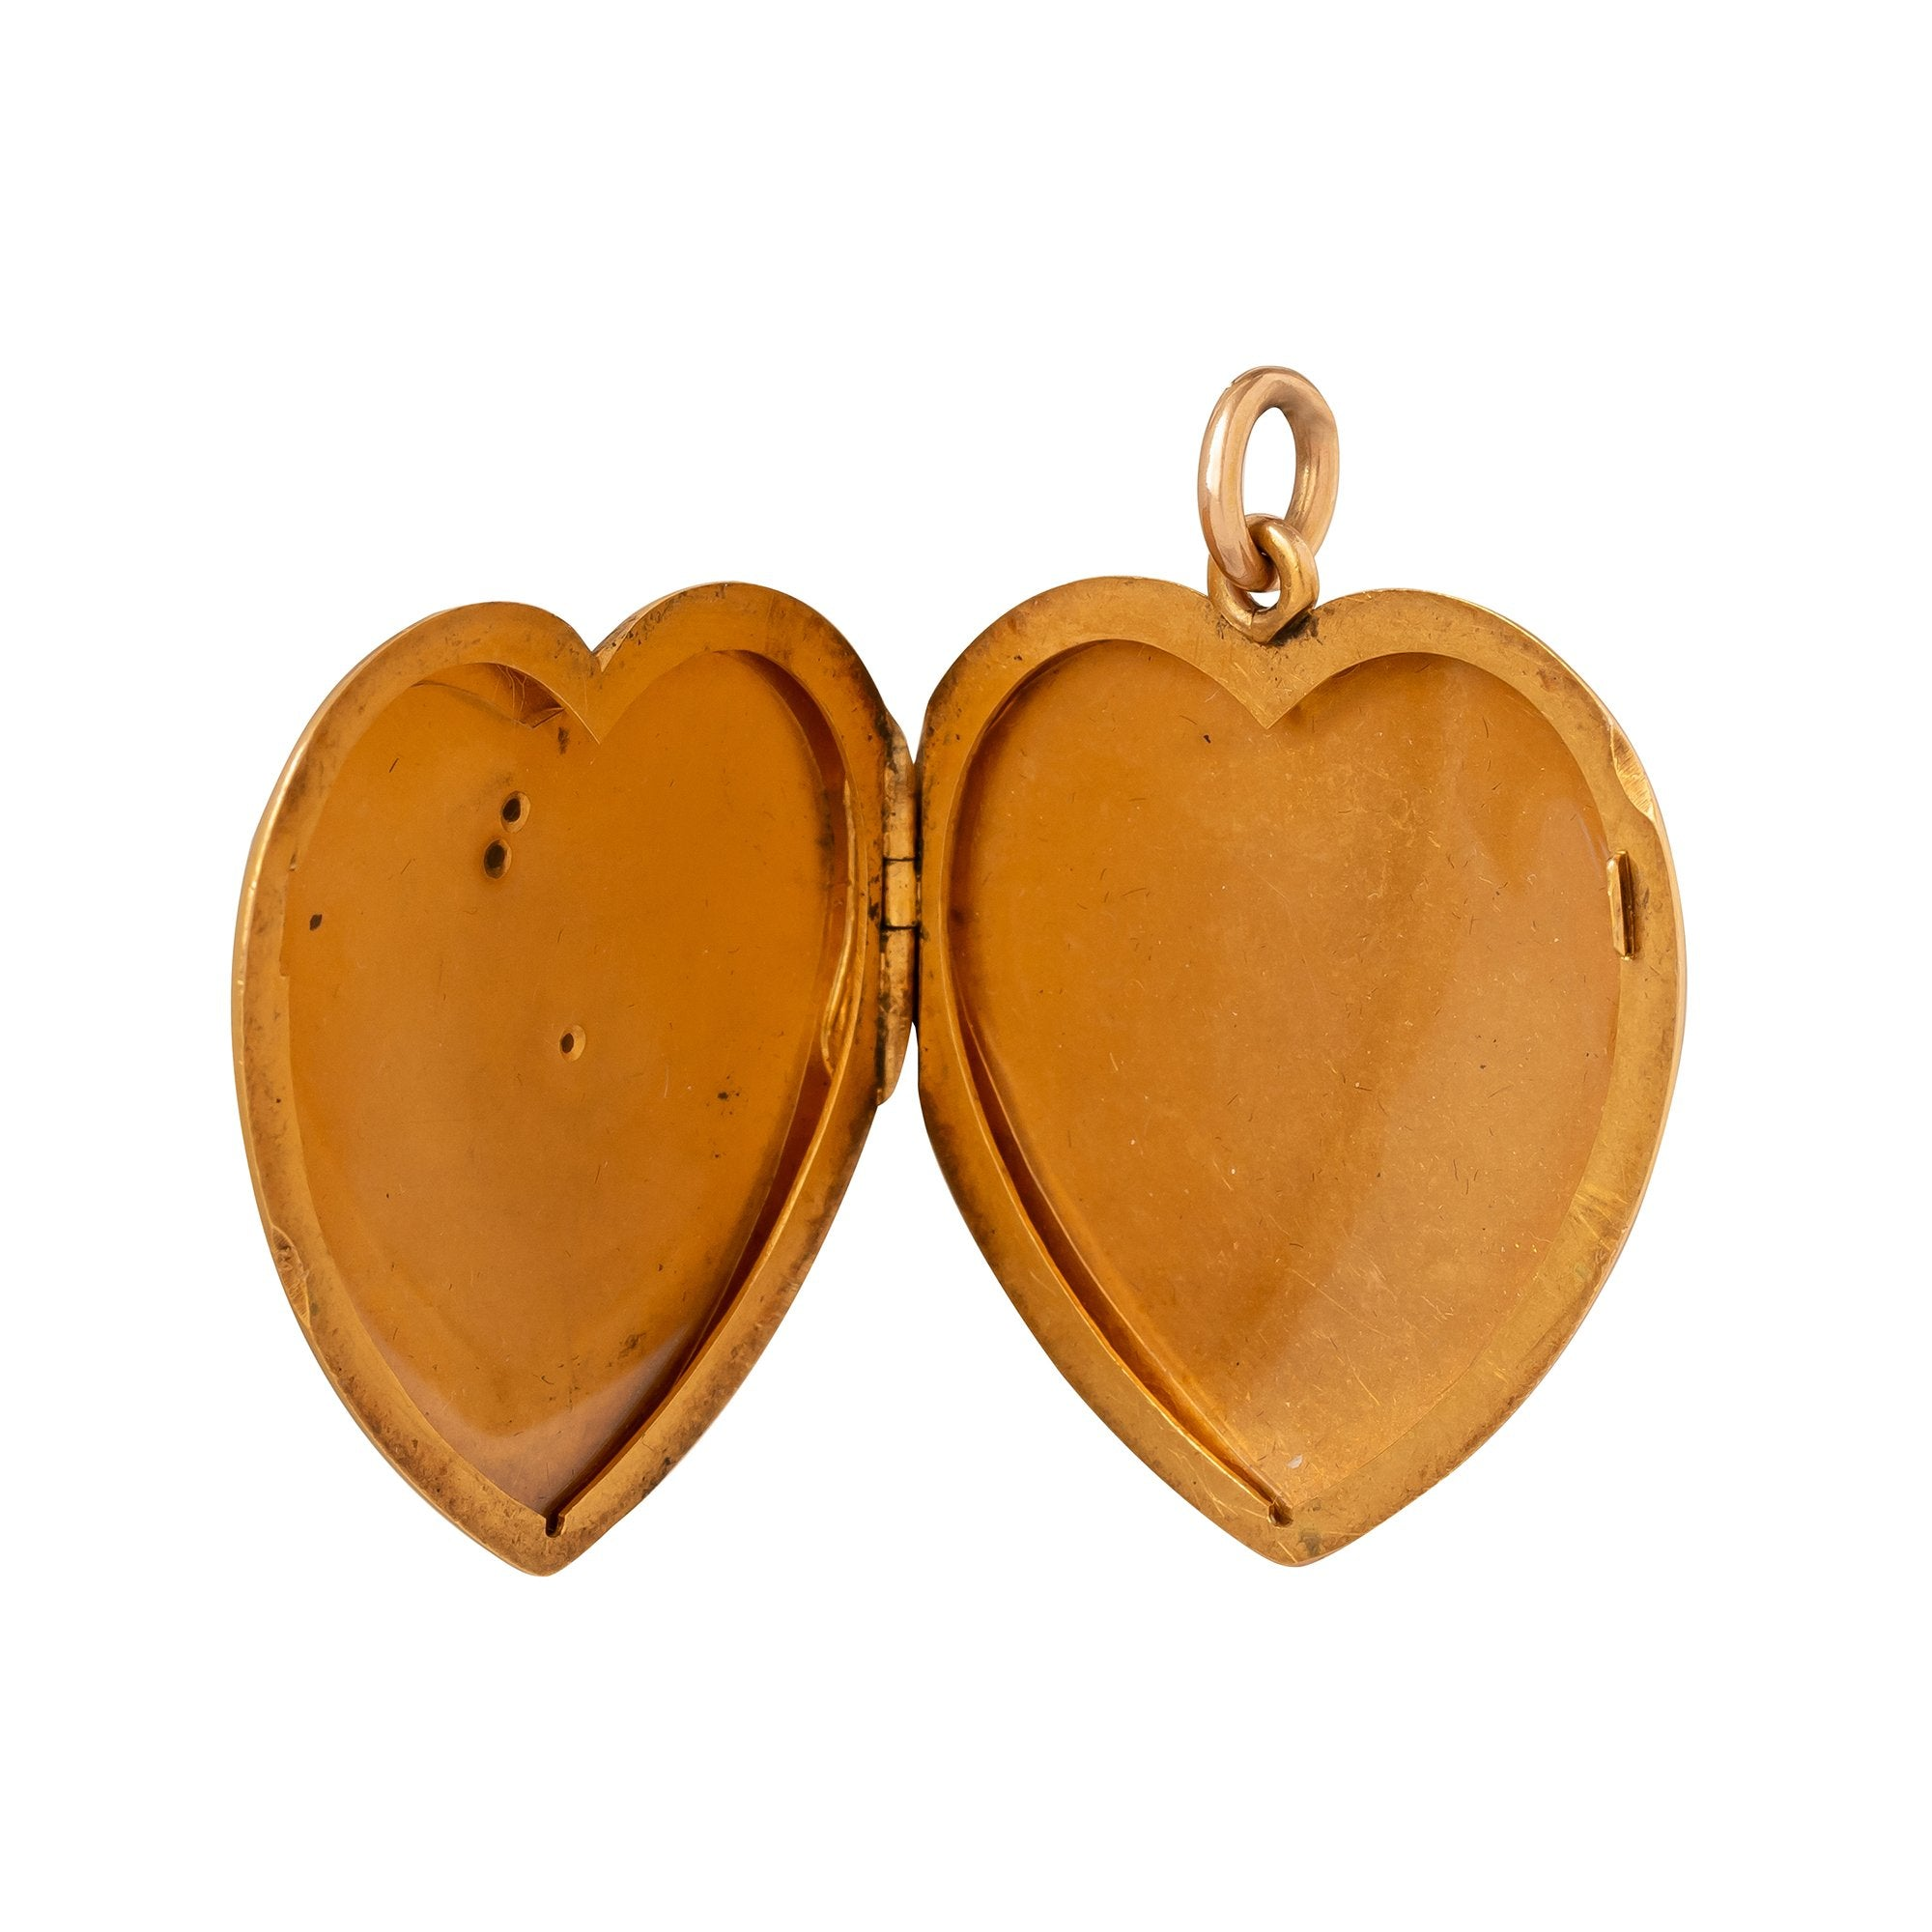 Antique & Vintage Jewelry Art Nouveau Heart Shaped Women Locket - Charms & Pendants - Broken English Jewelry